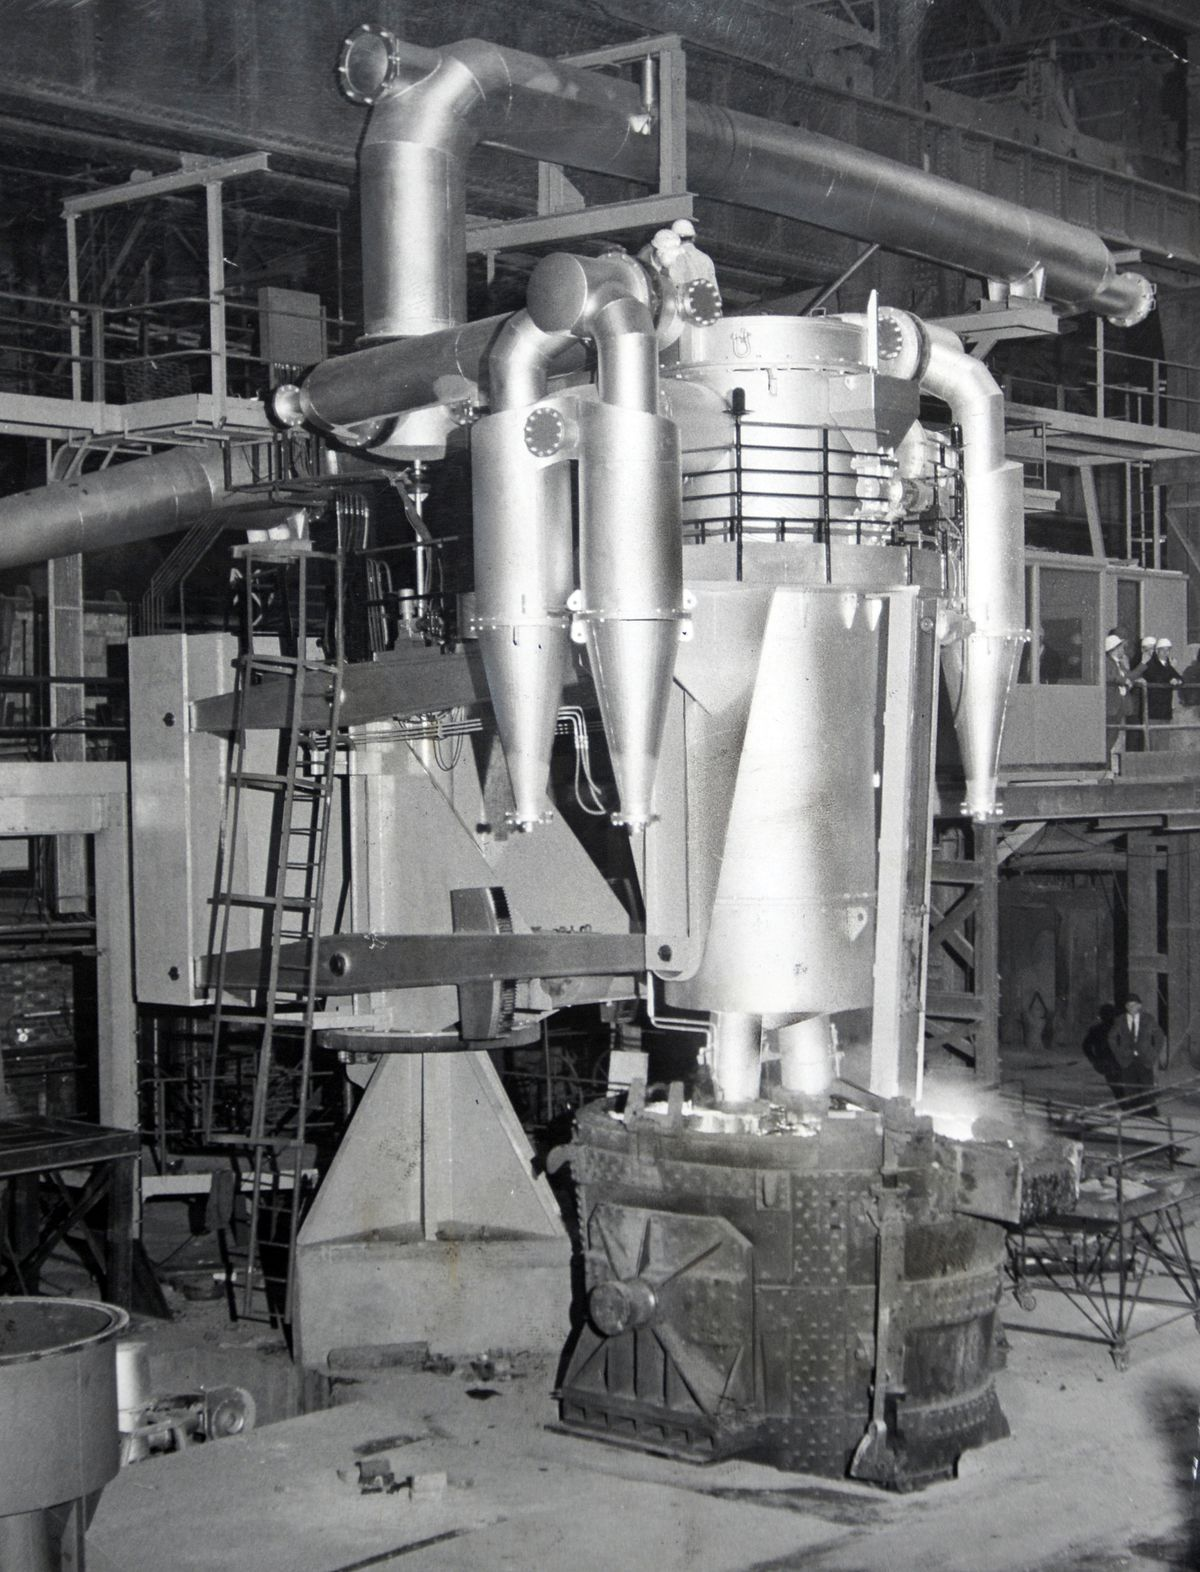 A degassing plant at Bilston steelworks, pictured in 1965